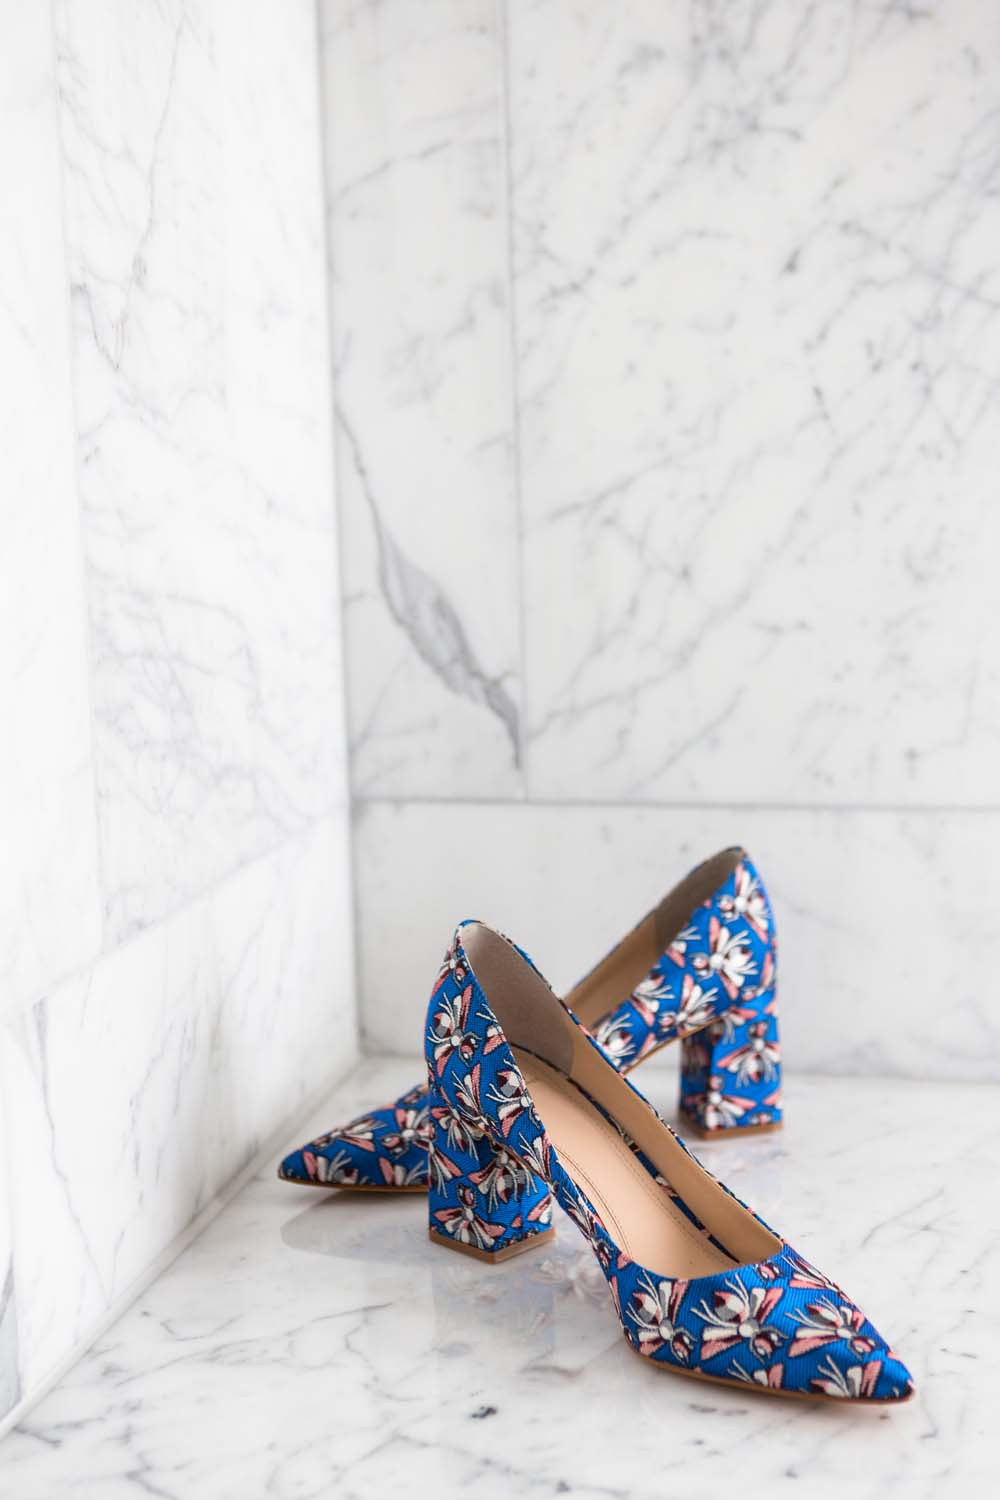 A Modern Wedding At The Great Hall In Toronto - shoes